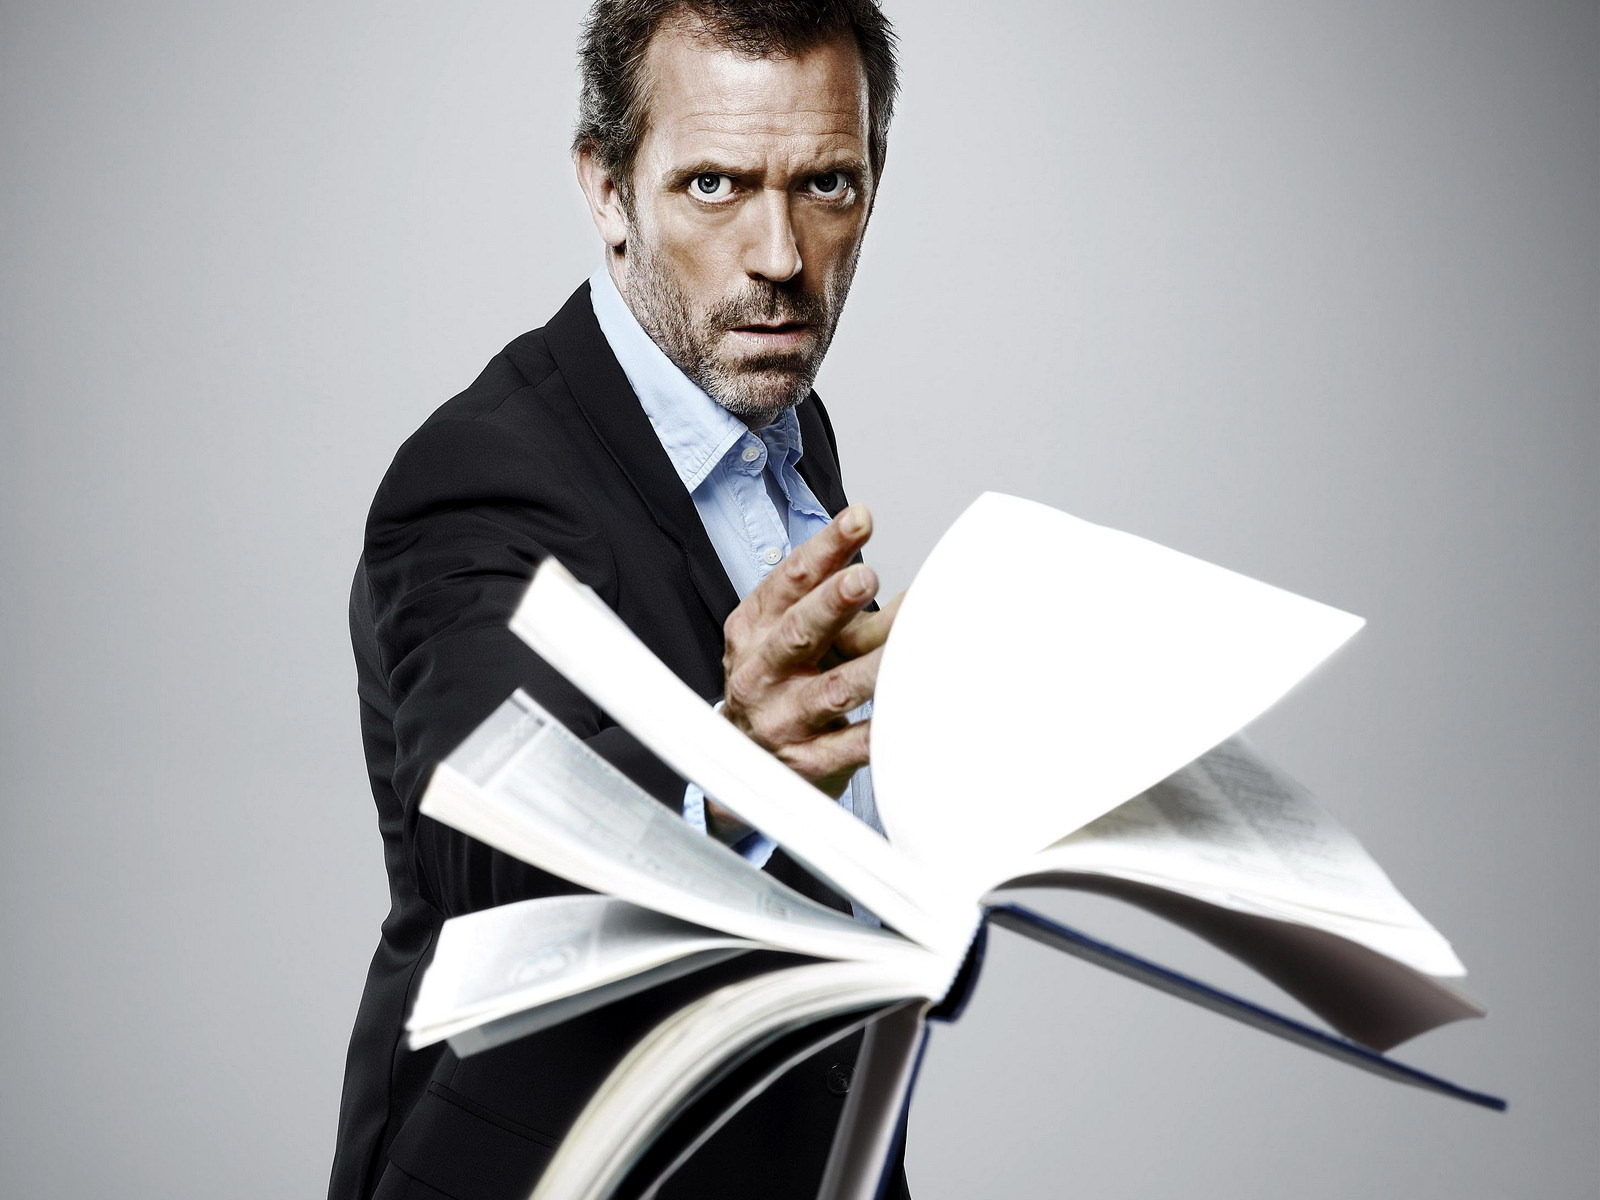 Dr House Solves A Case In Real Life Physicians News